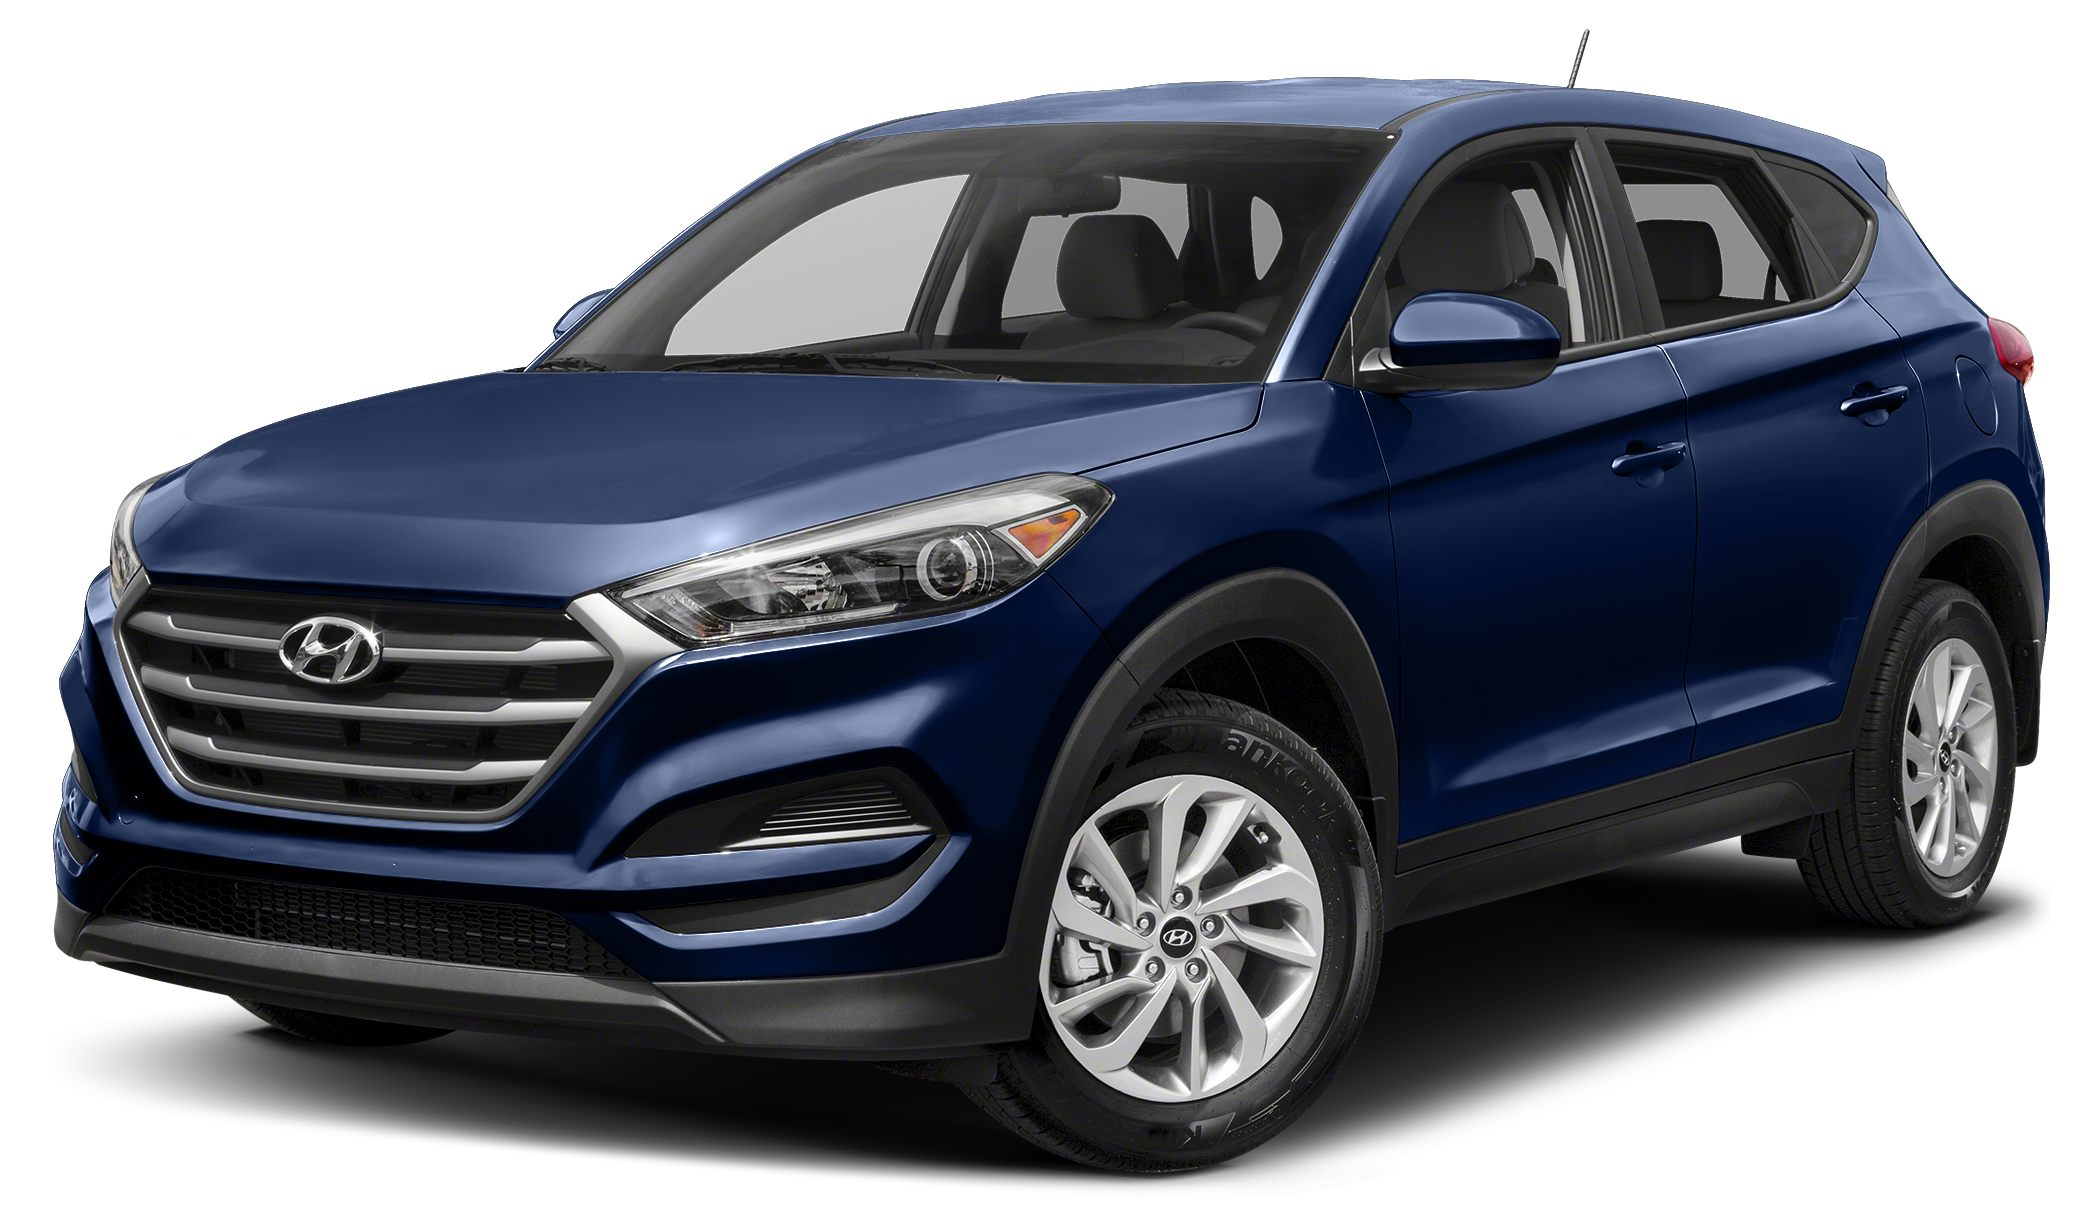 2017 Hyundai Tucson Eco Bluetooth Please let us help you with Finding the ideal New Preowned